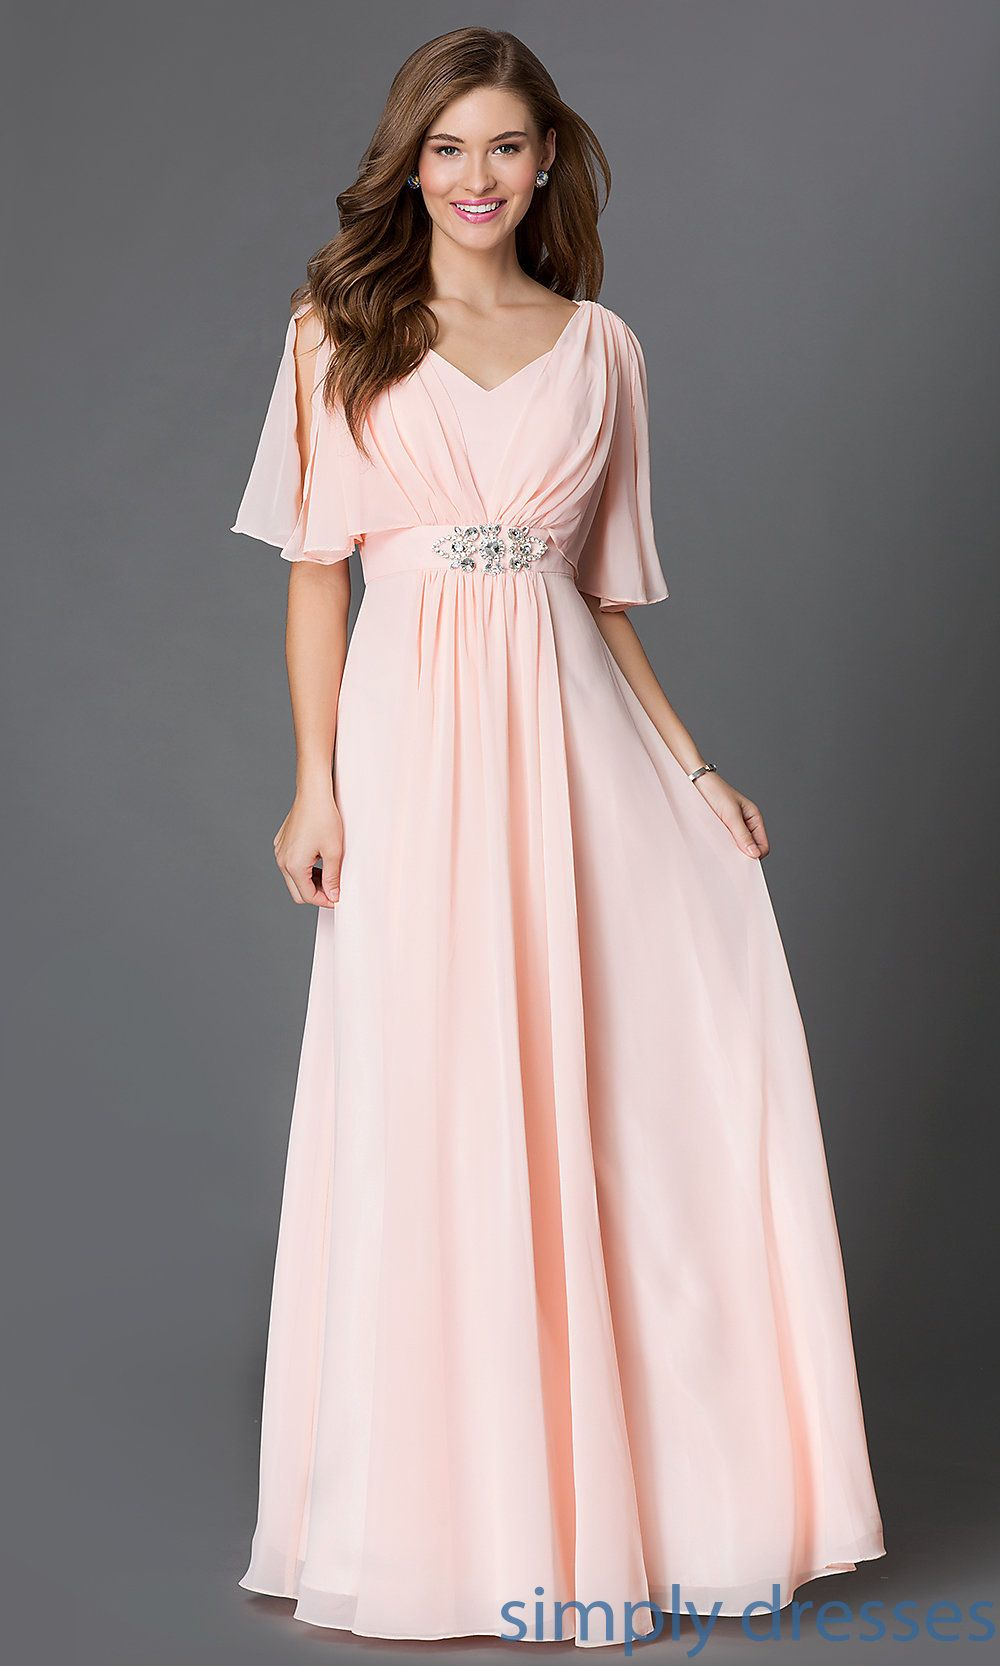 Shop long flutter-sleeve dresses and mother-of-the-bride dresses at Simply  Dresses. Long budget prom dresses with empire-waists for formals. 54271368896f